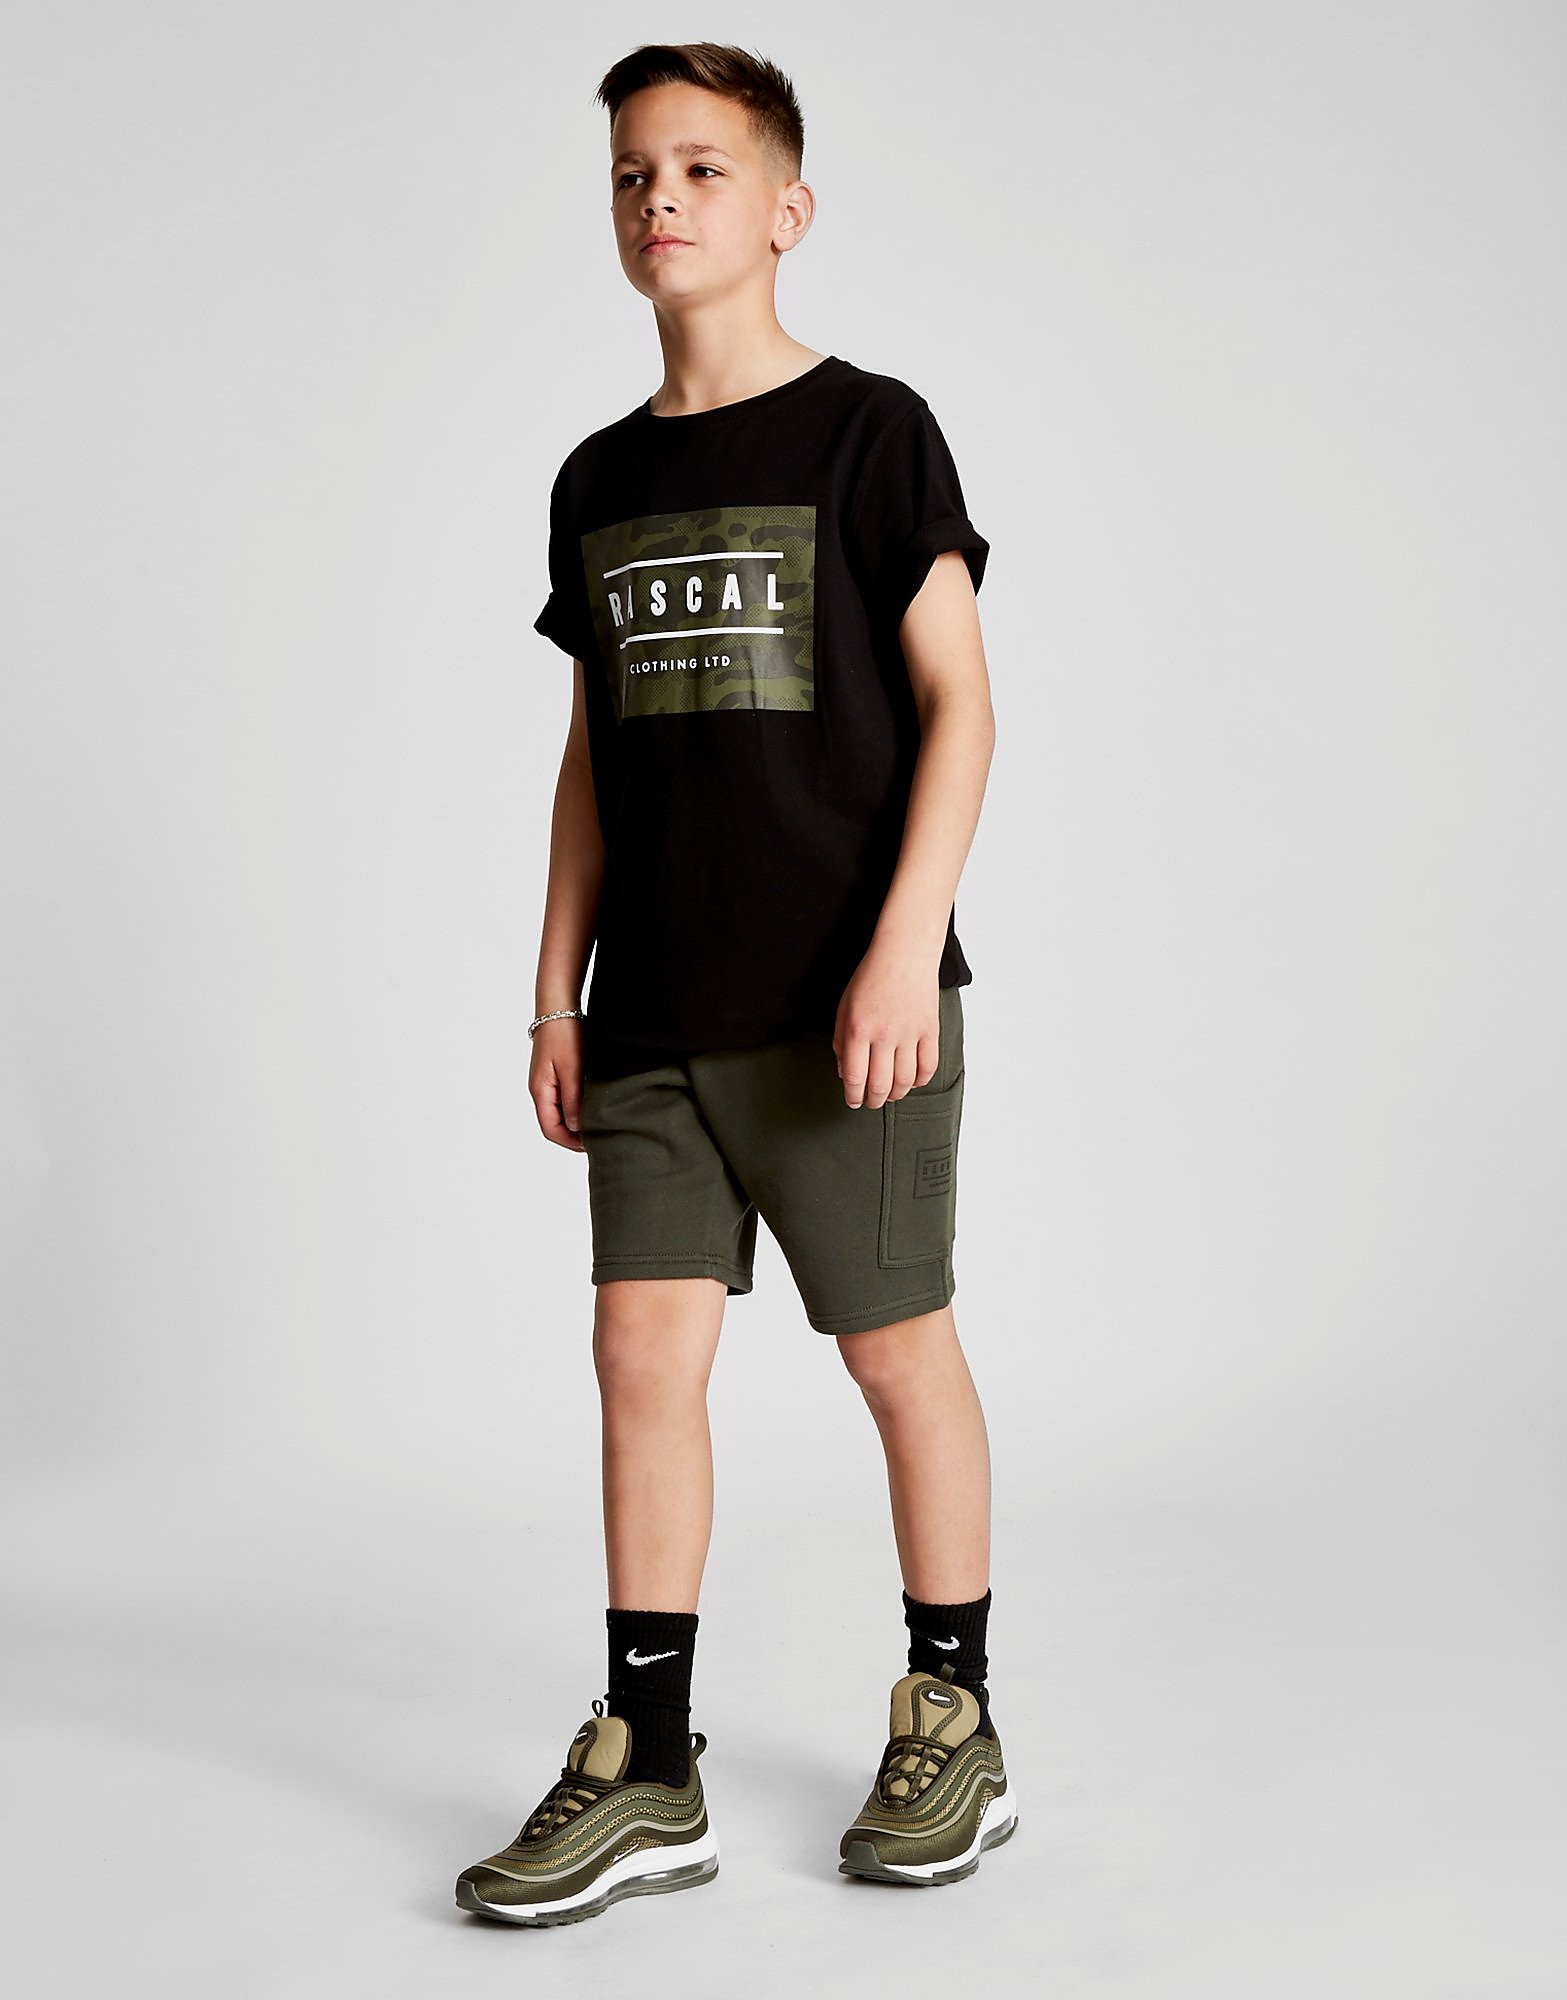 Rascal Elba Cargo Shorts Junior